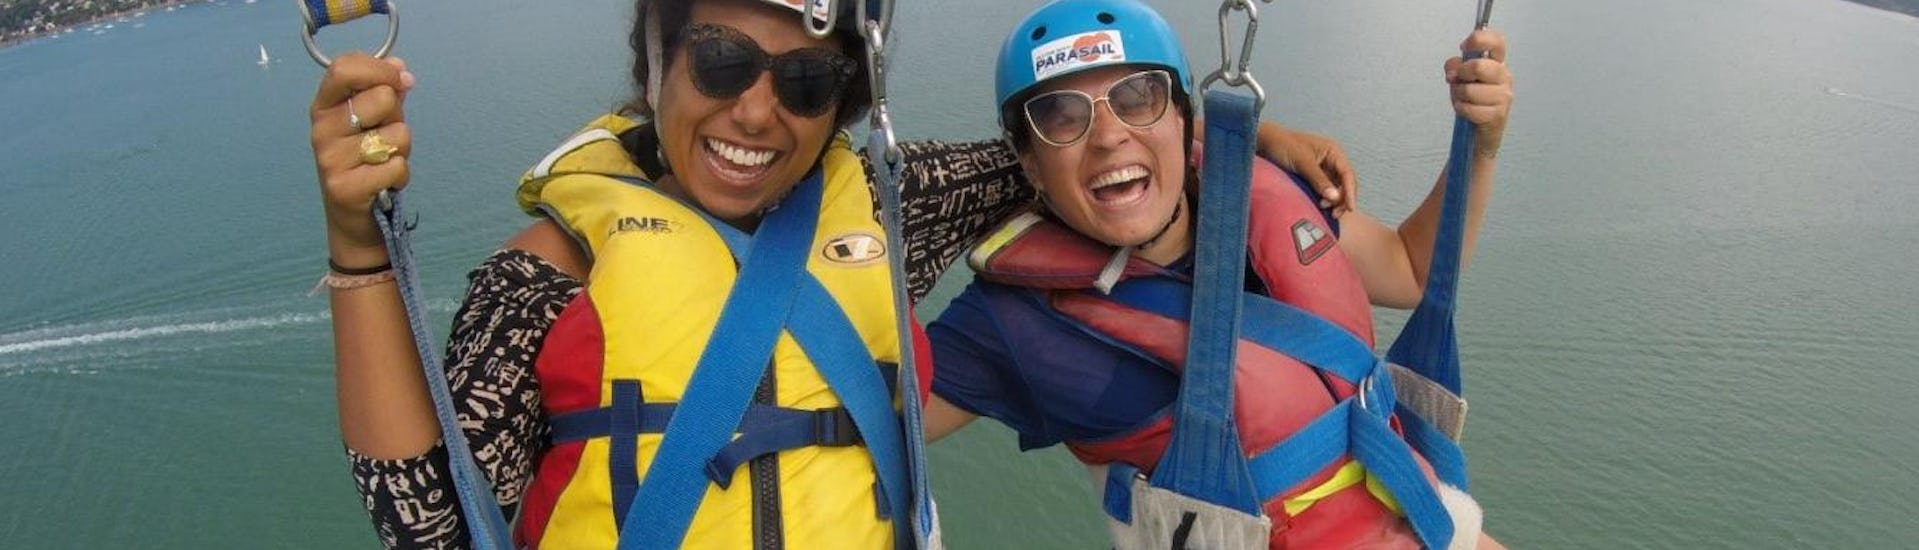 During the Private Parasailing in Paihia - For up to 12 People, two friends are having great time thanks to the experienced team of Bay of Islands Parasail.